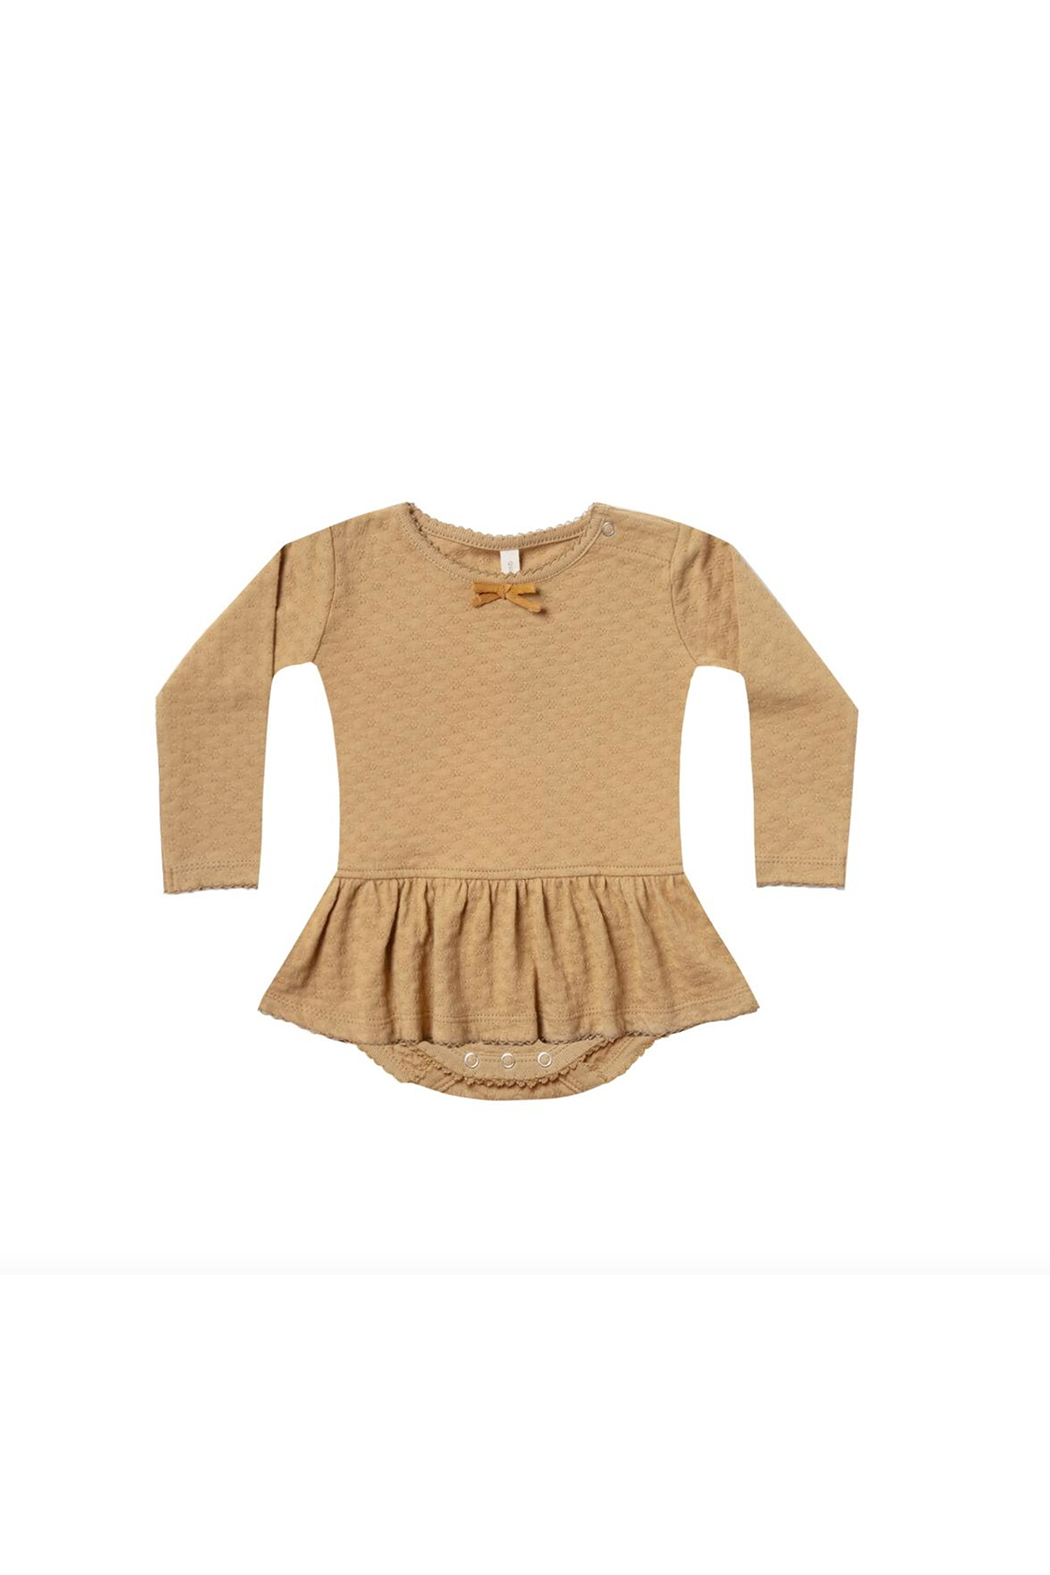 Quincy Mae Pointelle Skirted Onesie - Main Image